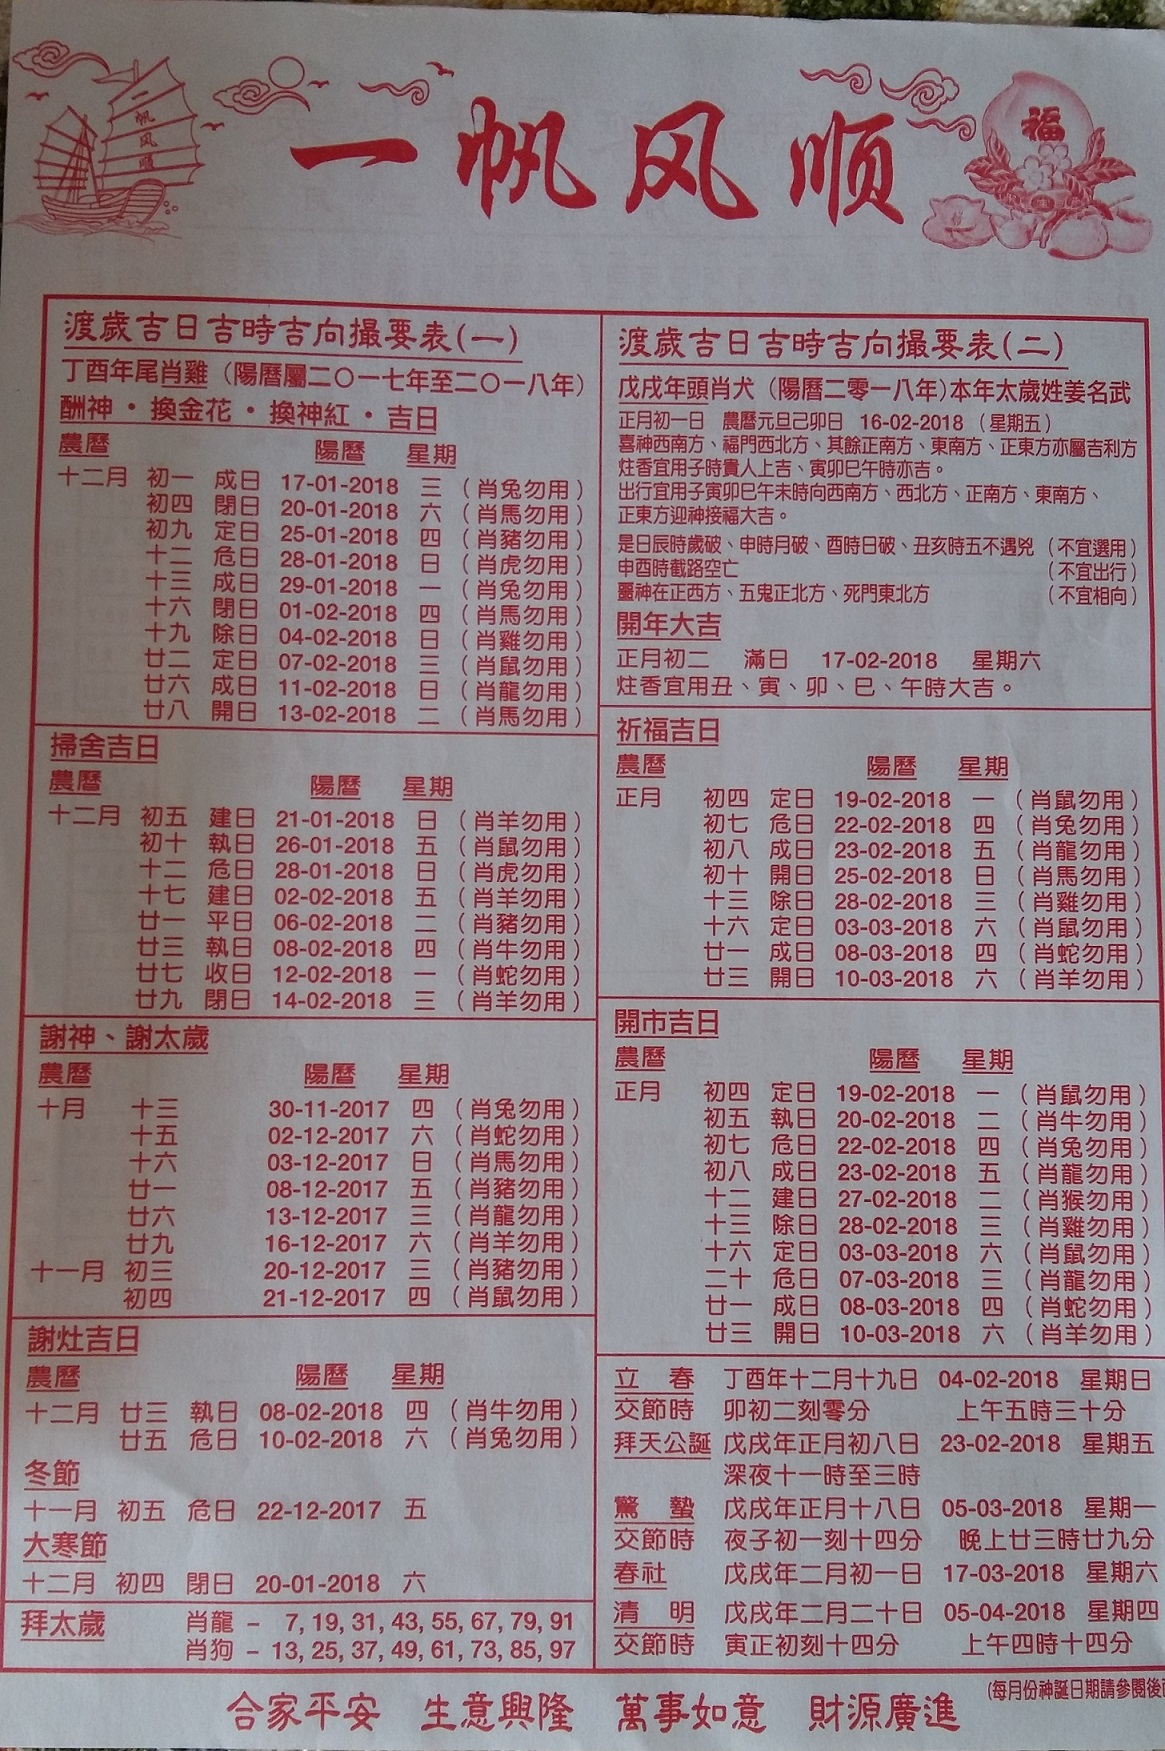 Chinese lunar calendar full moon and new moon dates - Visit Malaysia